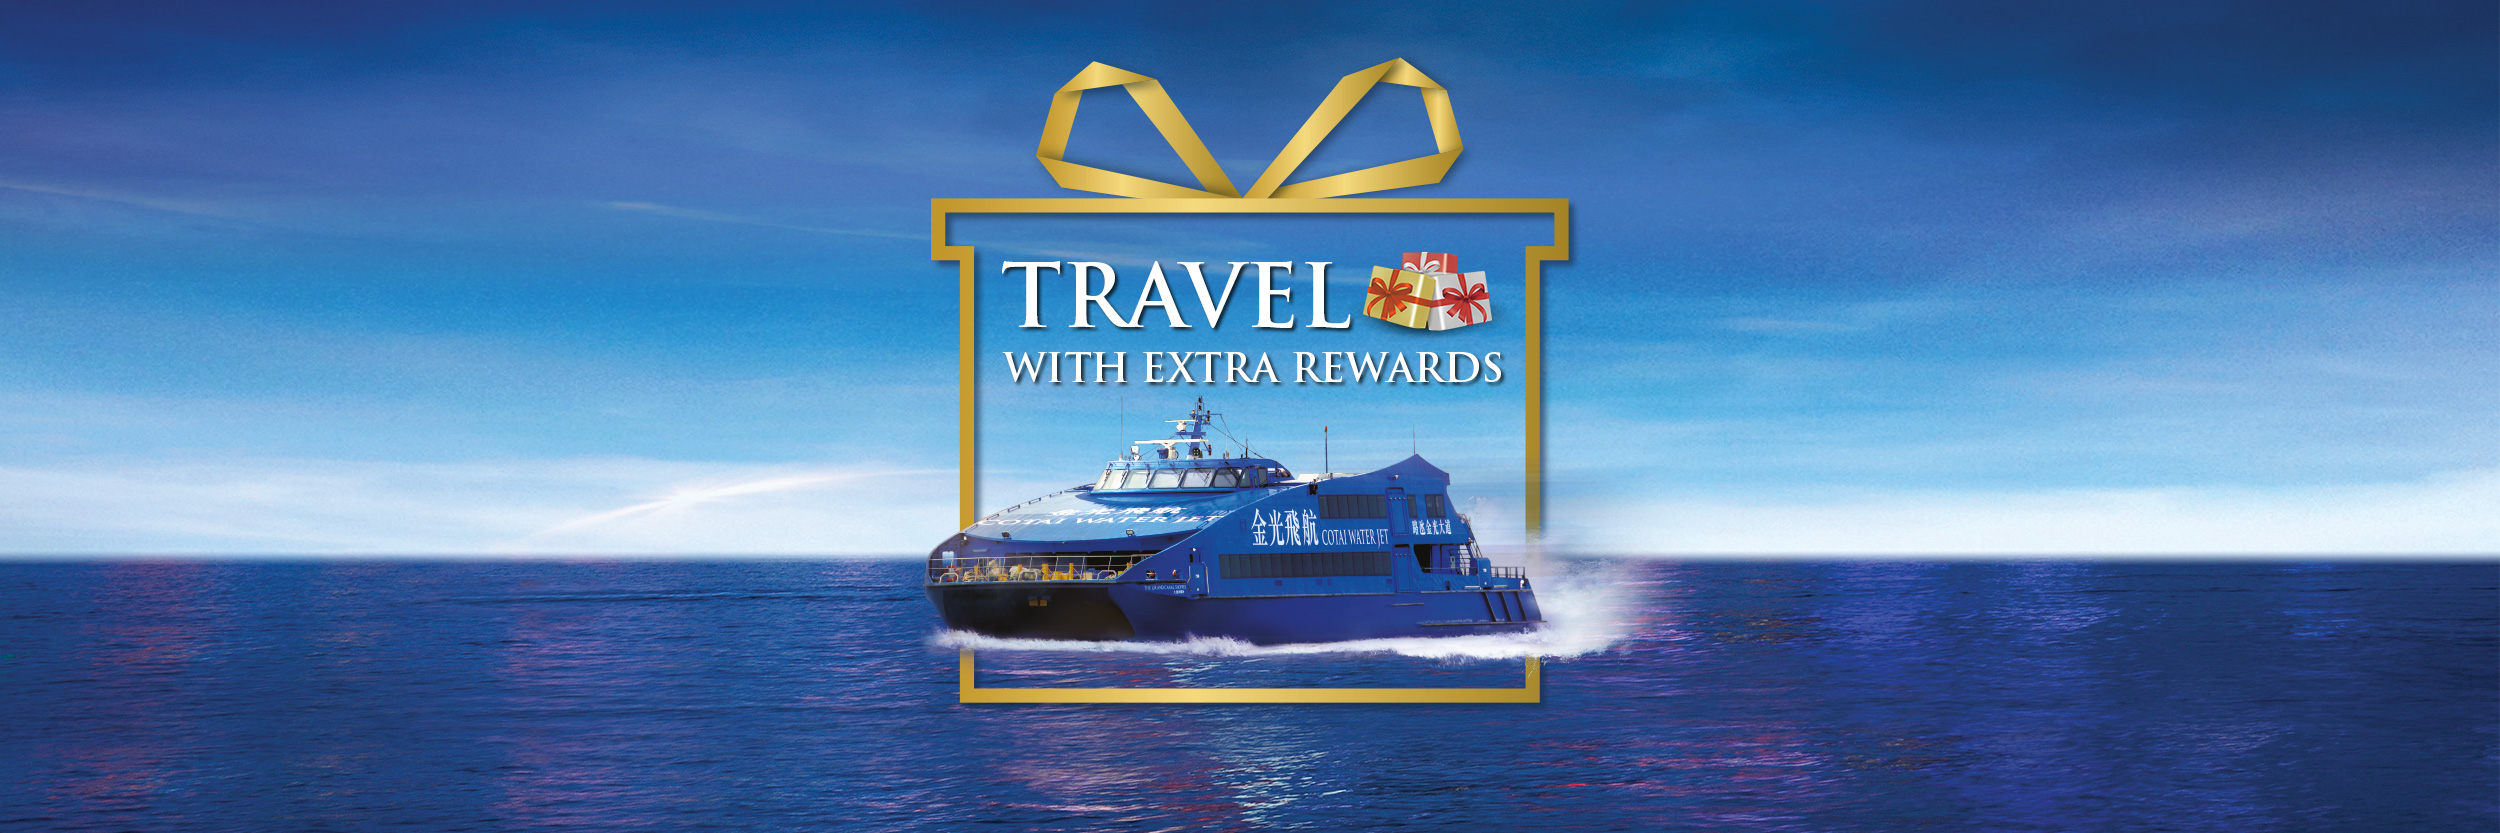 Cotai Water Jet Boarding Pass Promotion